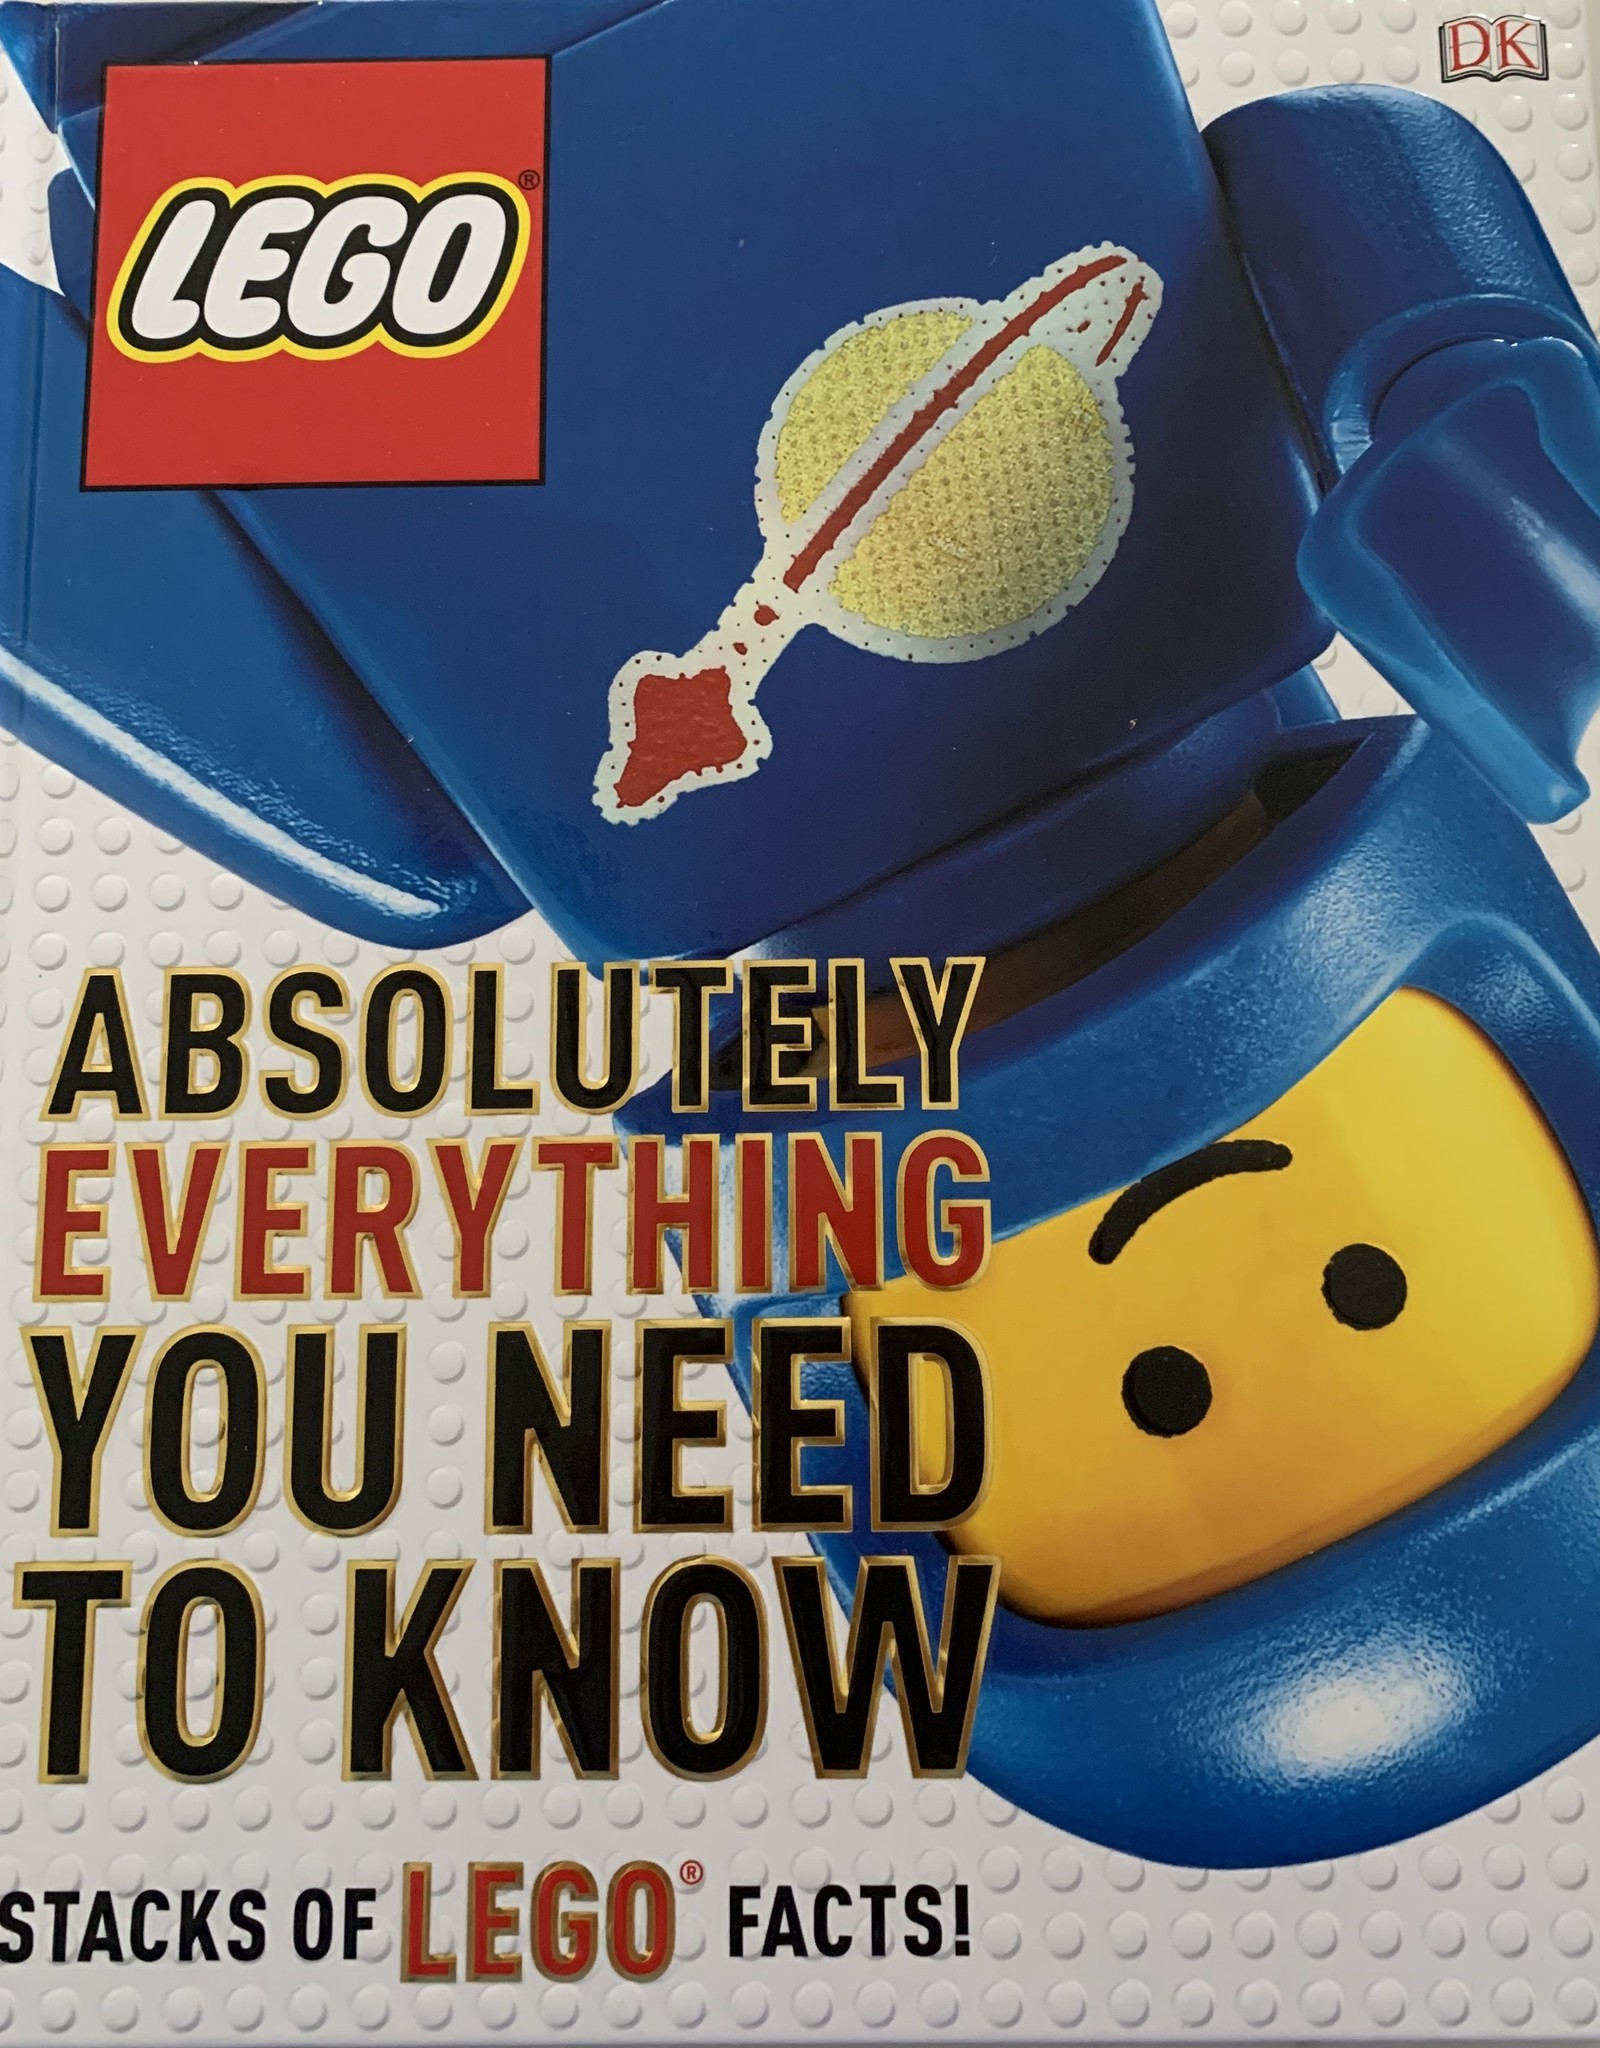 RANDOM HOUSE Absolutely Everything You Need To Know...Stacks of LEGO Facts!